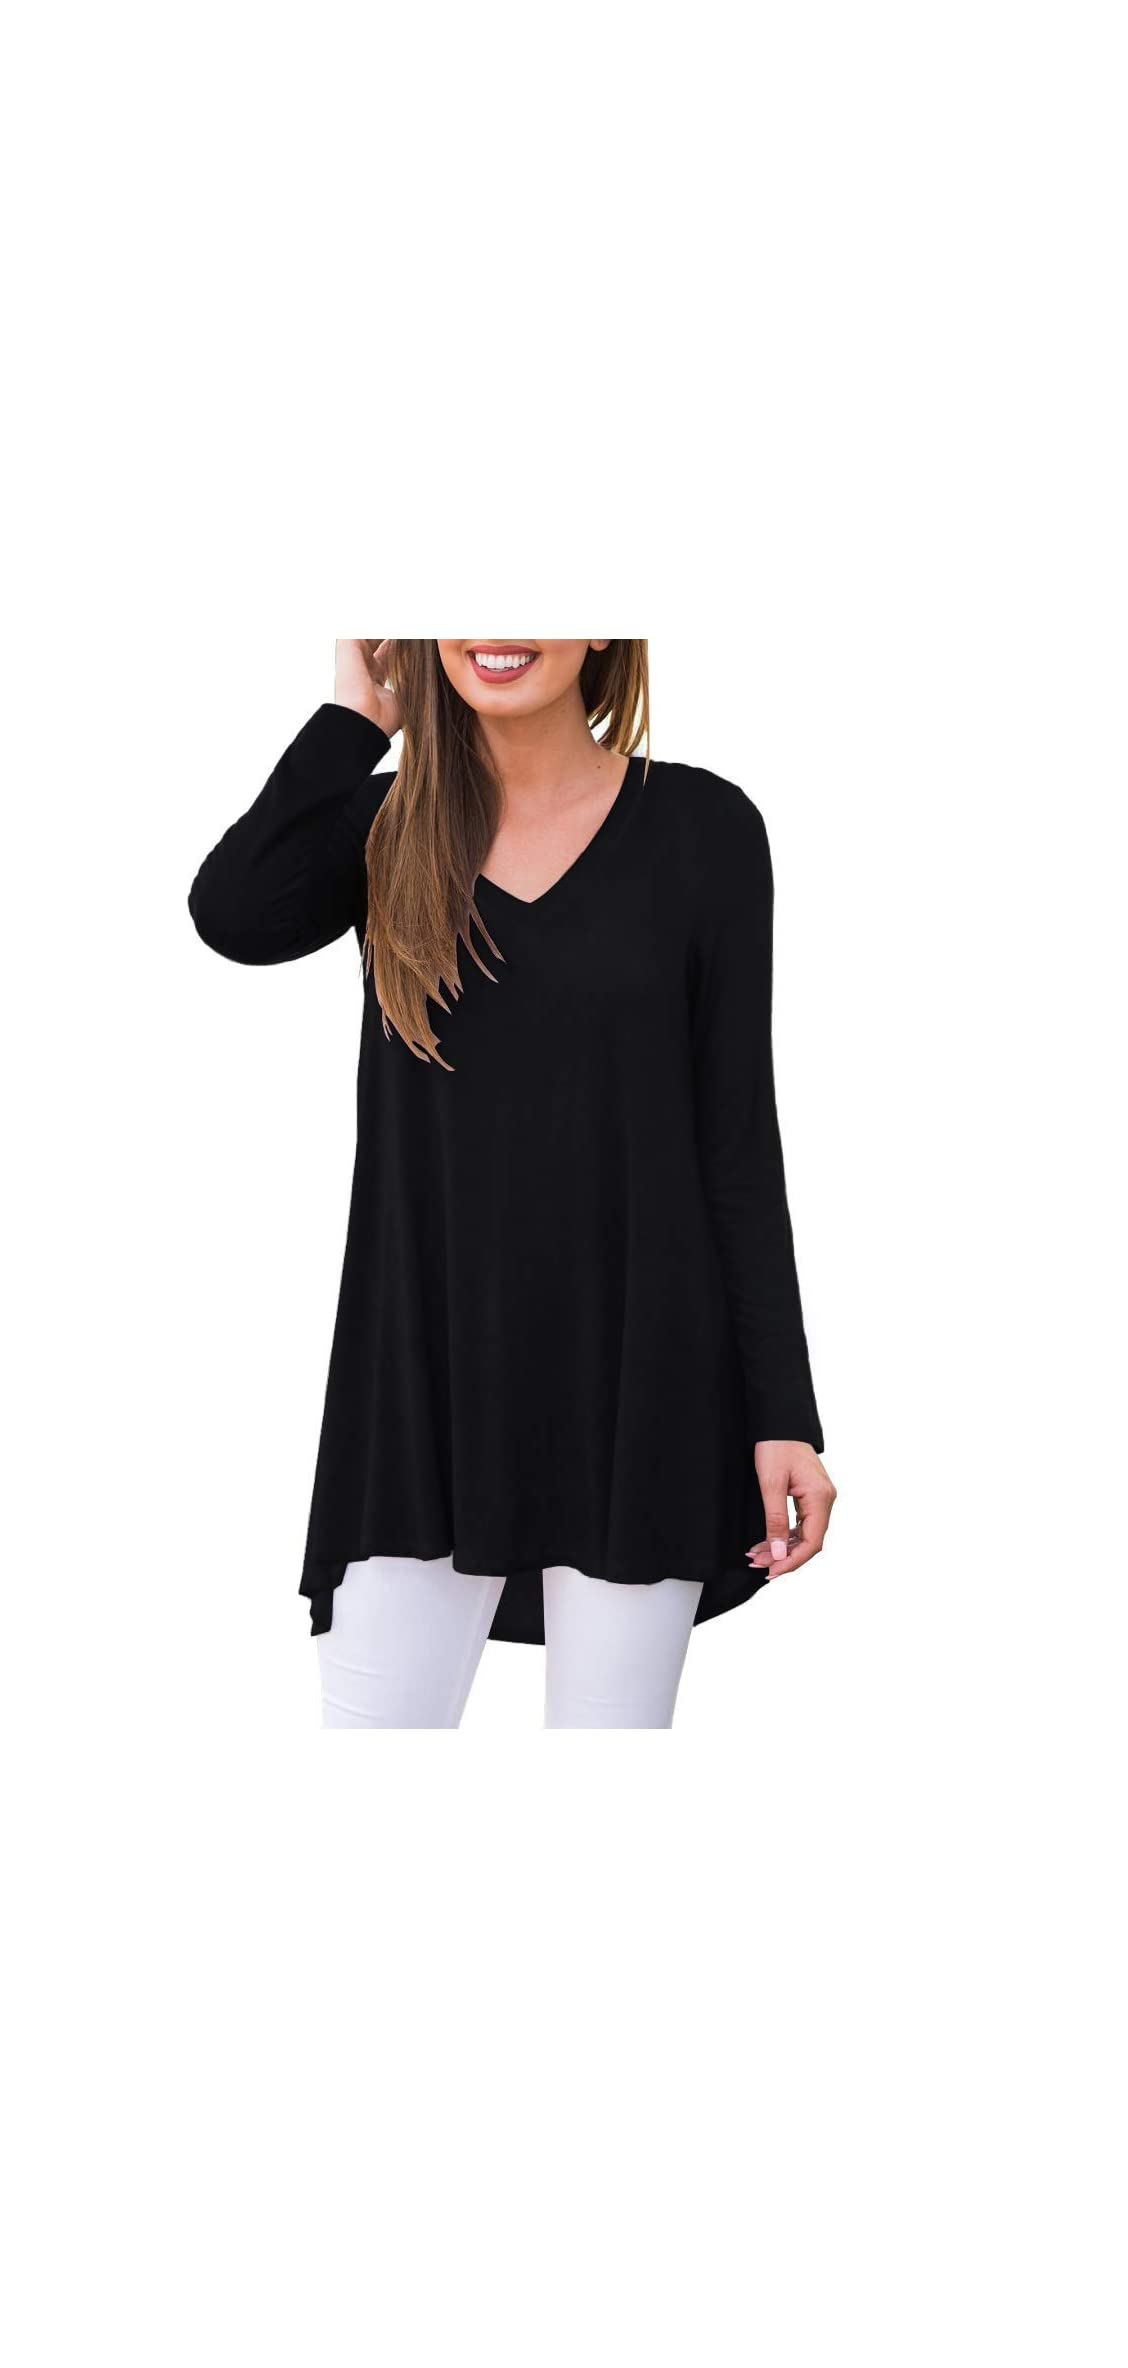 Women's Casual Lace Long Sleeve Tunic Top Blouse